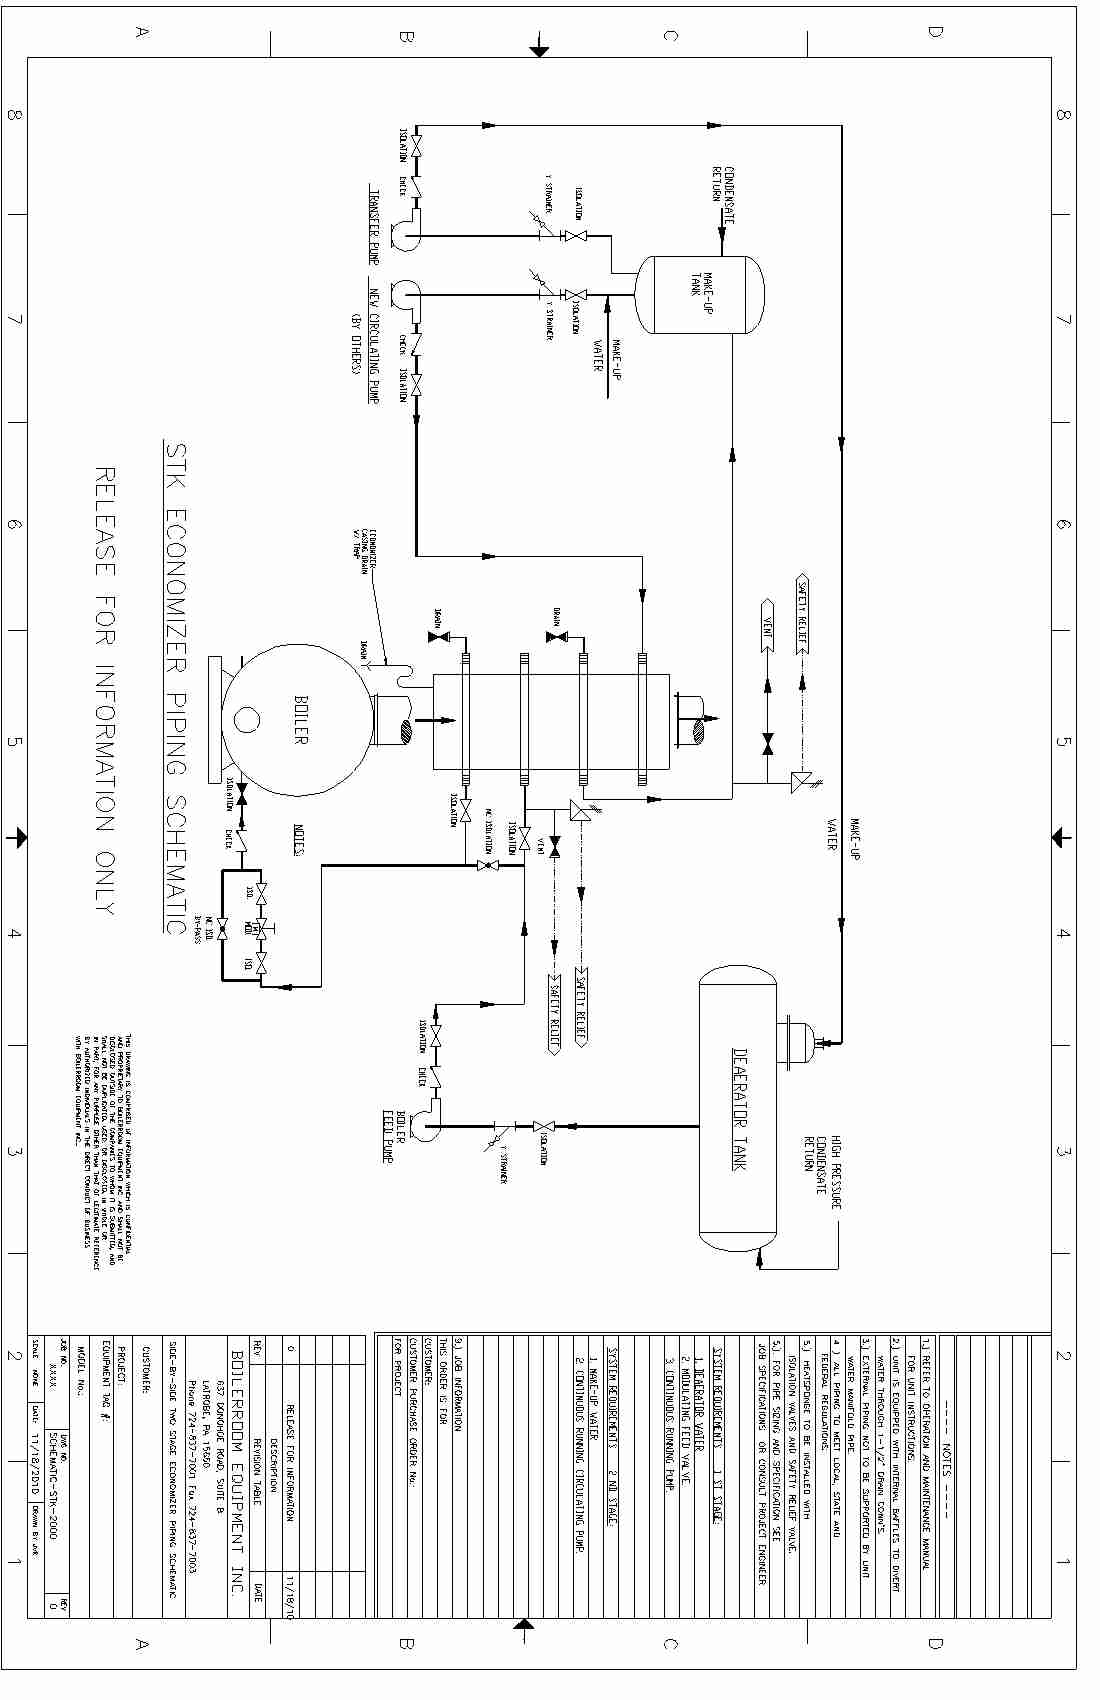 Condensing Boiler Condensing Boiler Piping Schematic